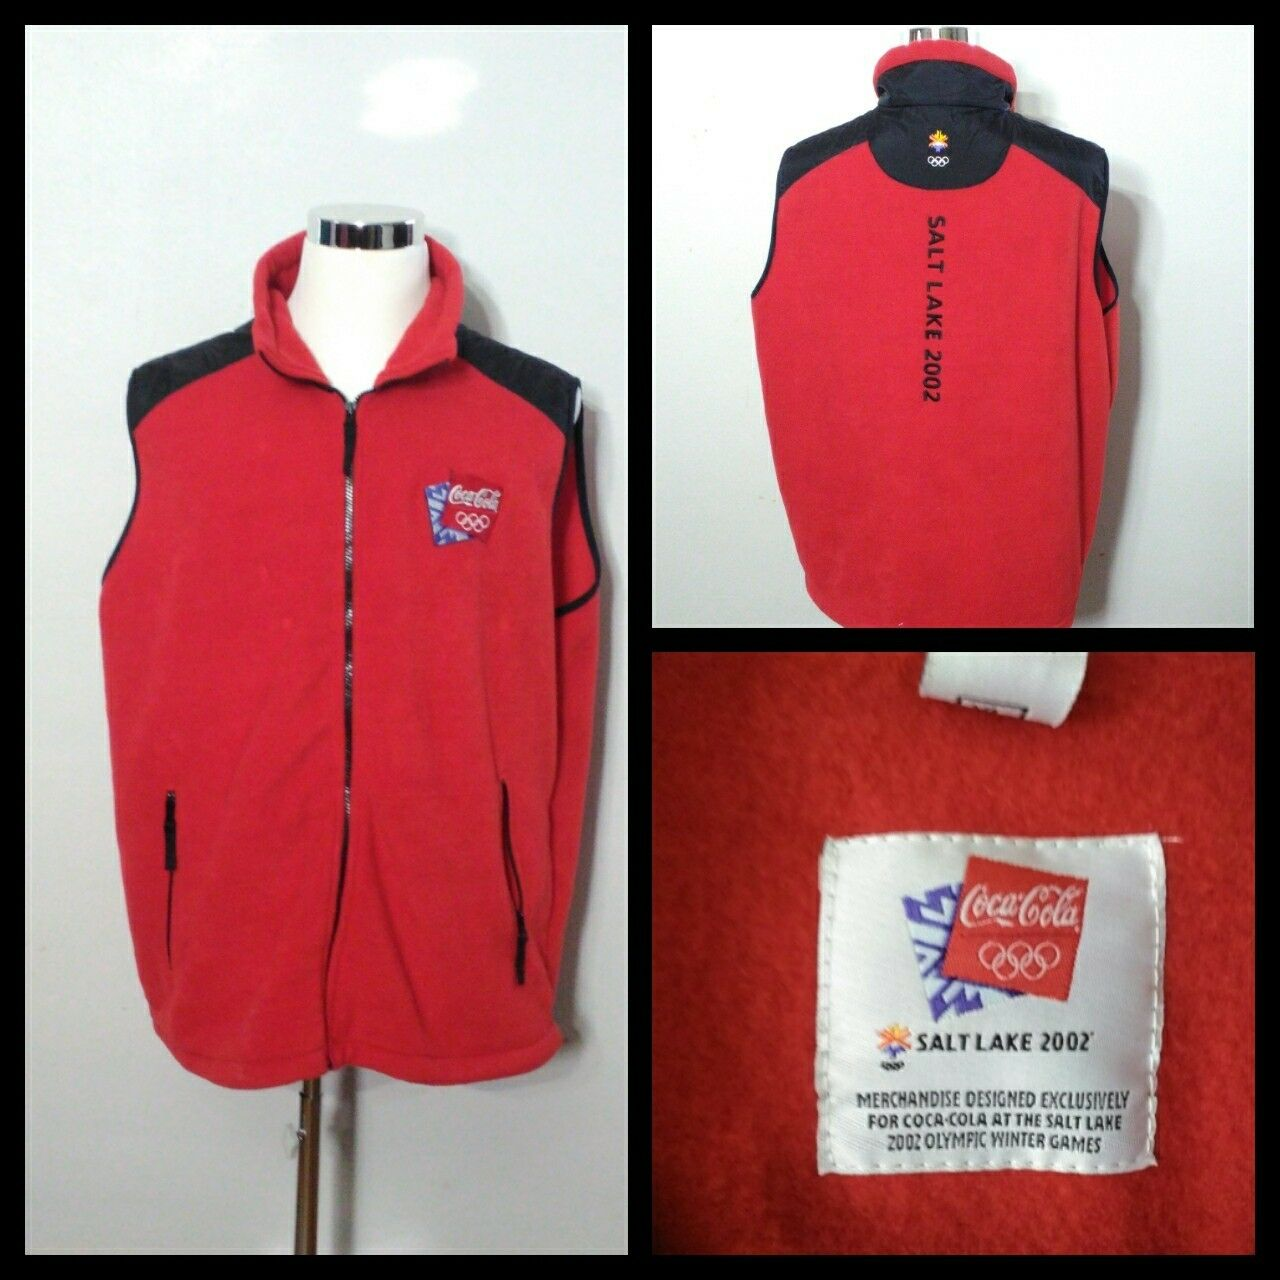 Coca Cola Olympic Vest Men's XL Red 2002 Salt Lake City Olympics Inv S8539